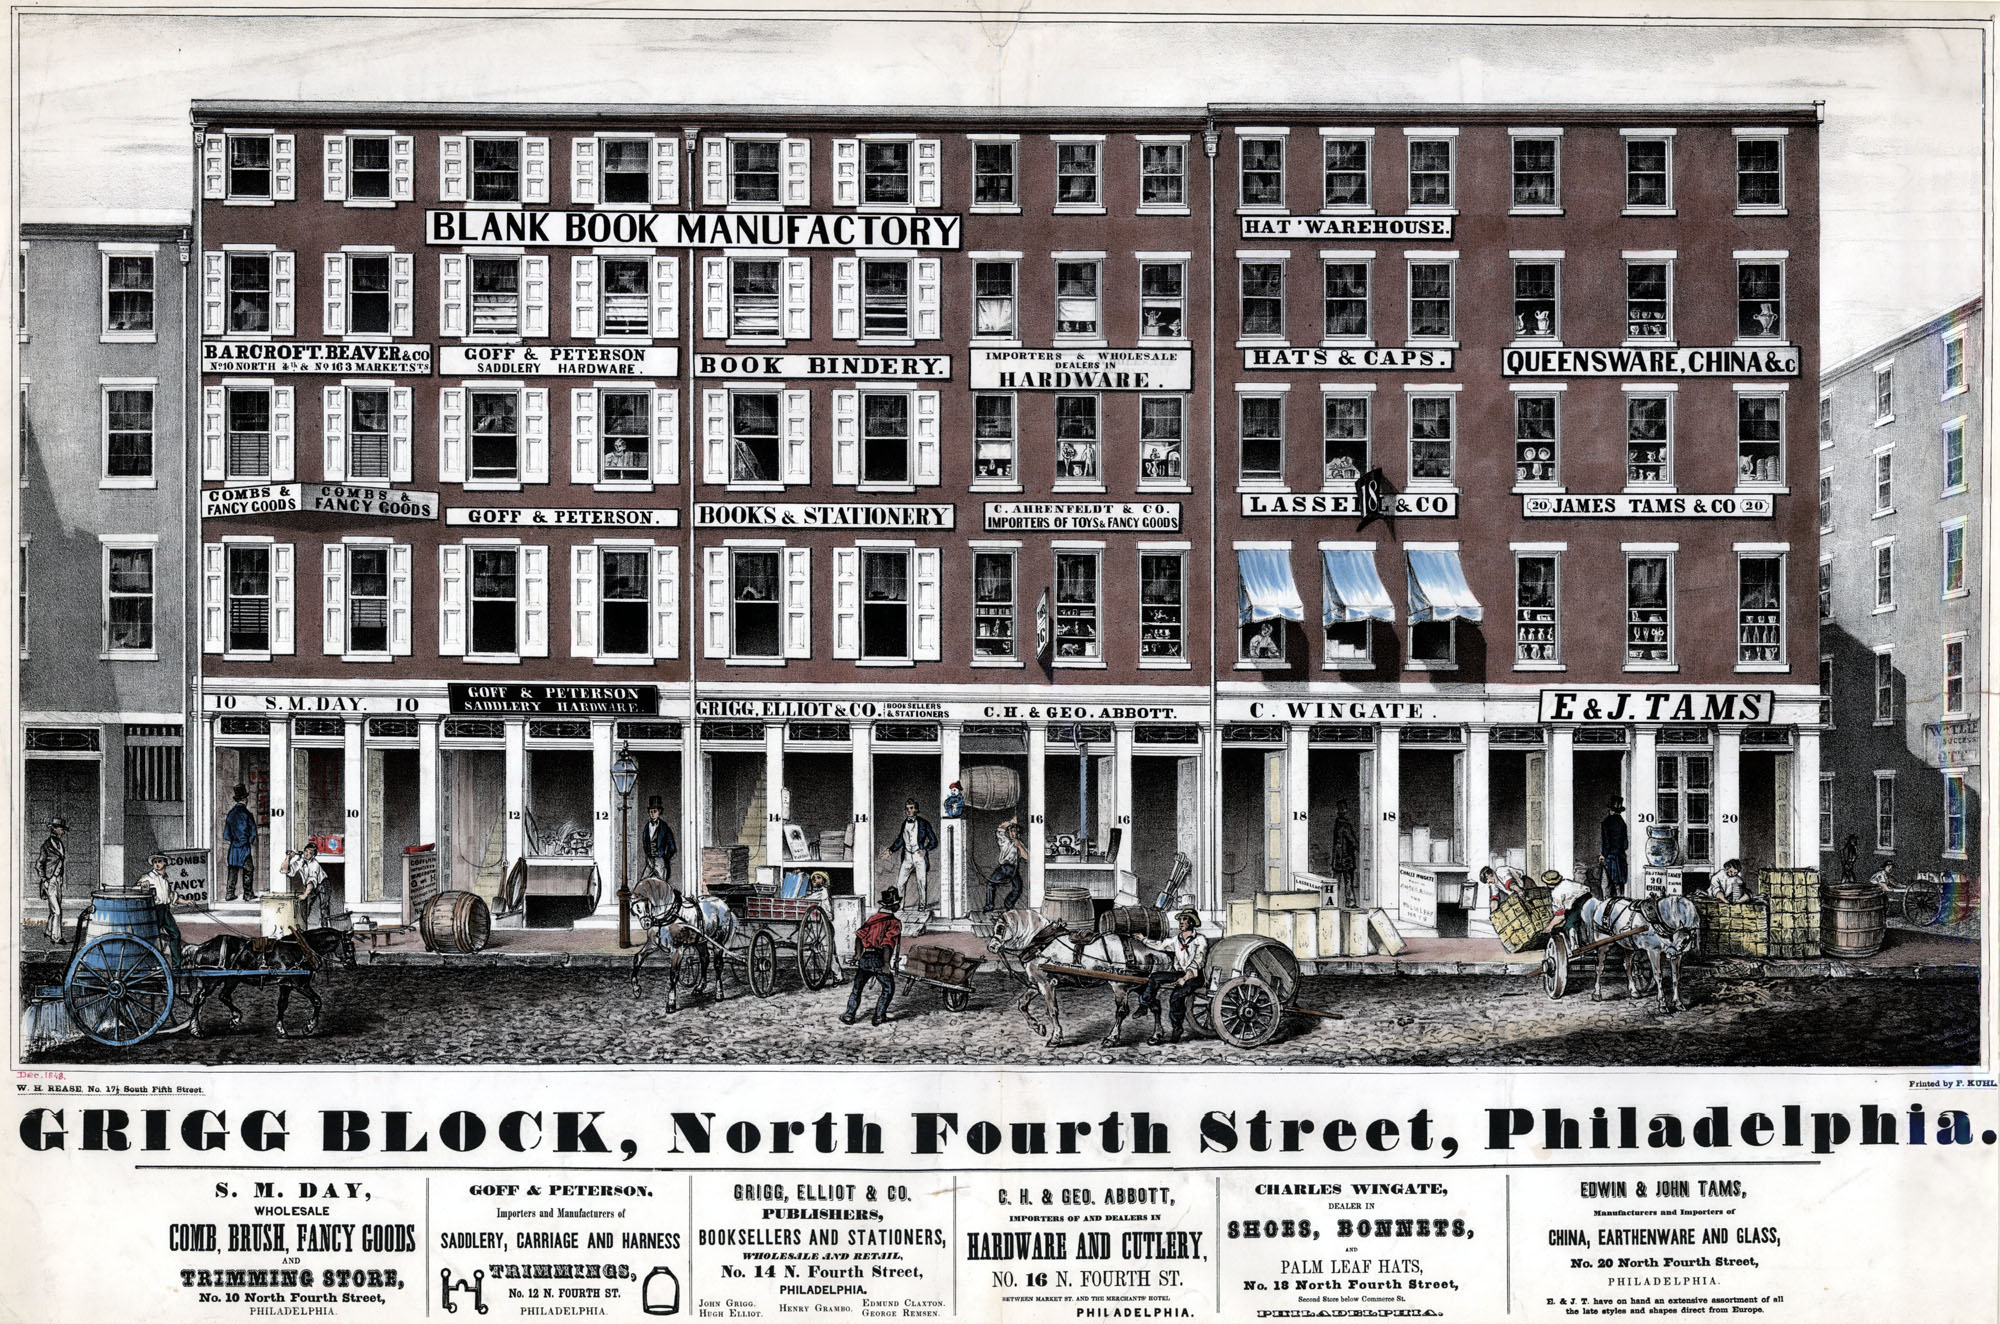 Rease, W. H. Grigg Block, North Fourth Street, Philadelphia. [Philadelphia, 1848].